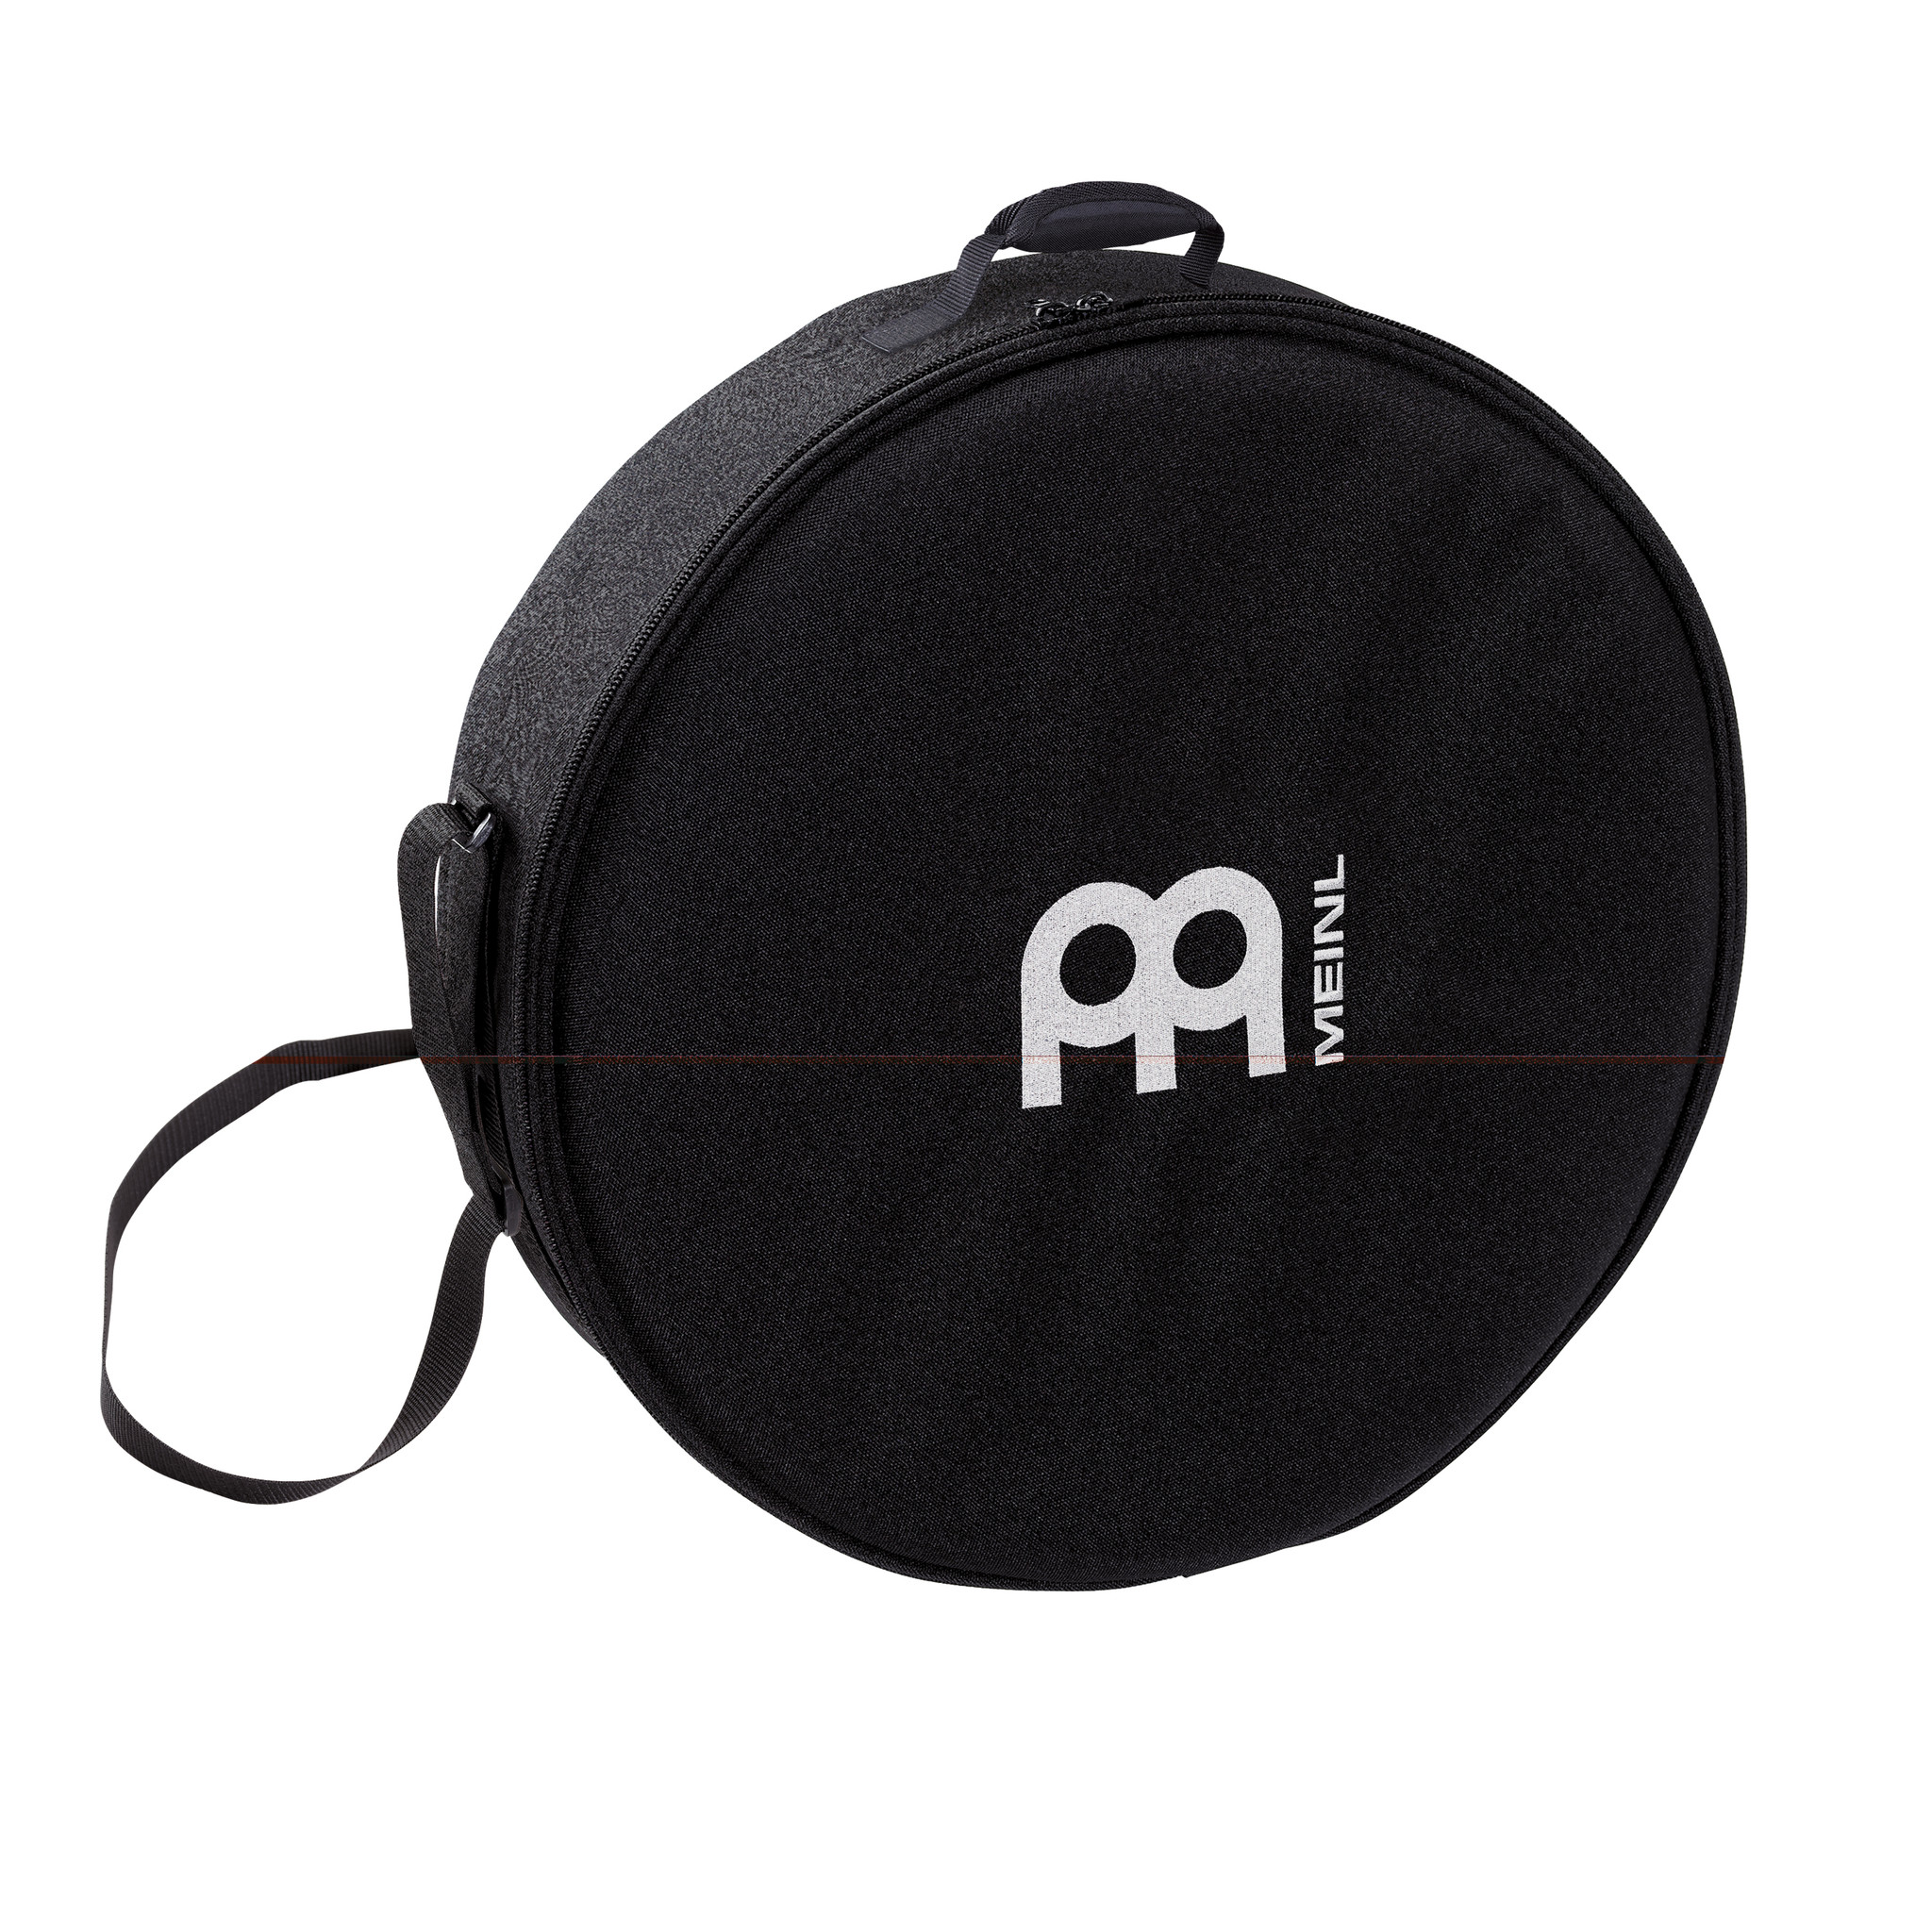 "Meinl Professional Frame Drum Bag 16"" Black"